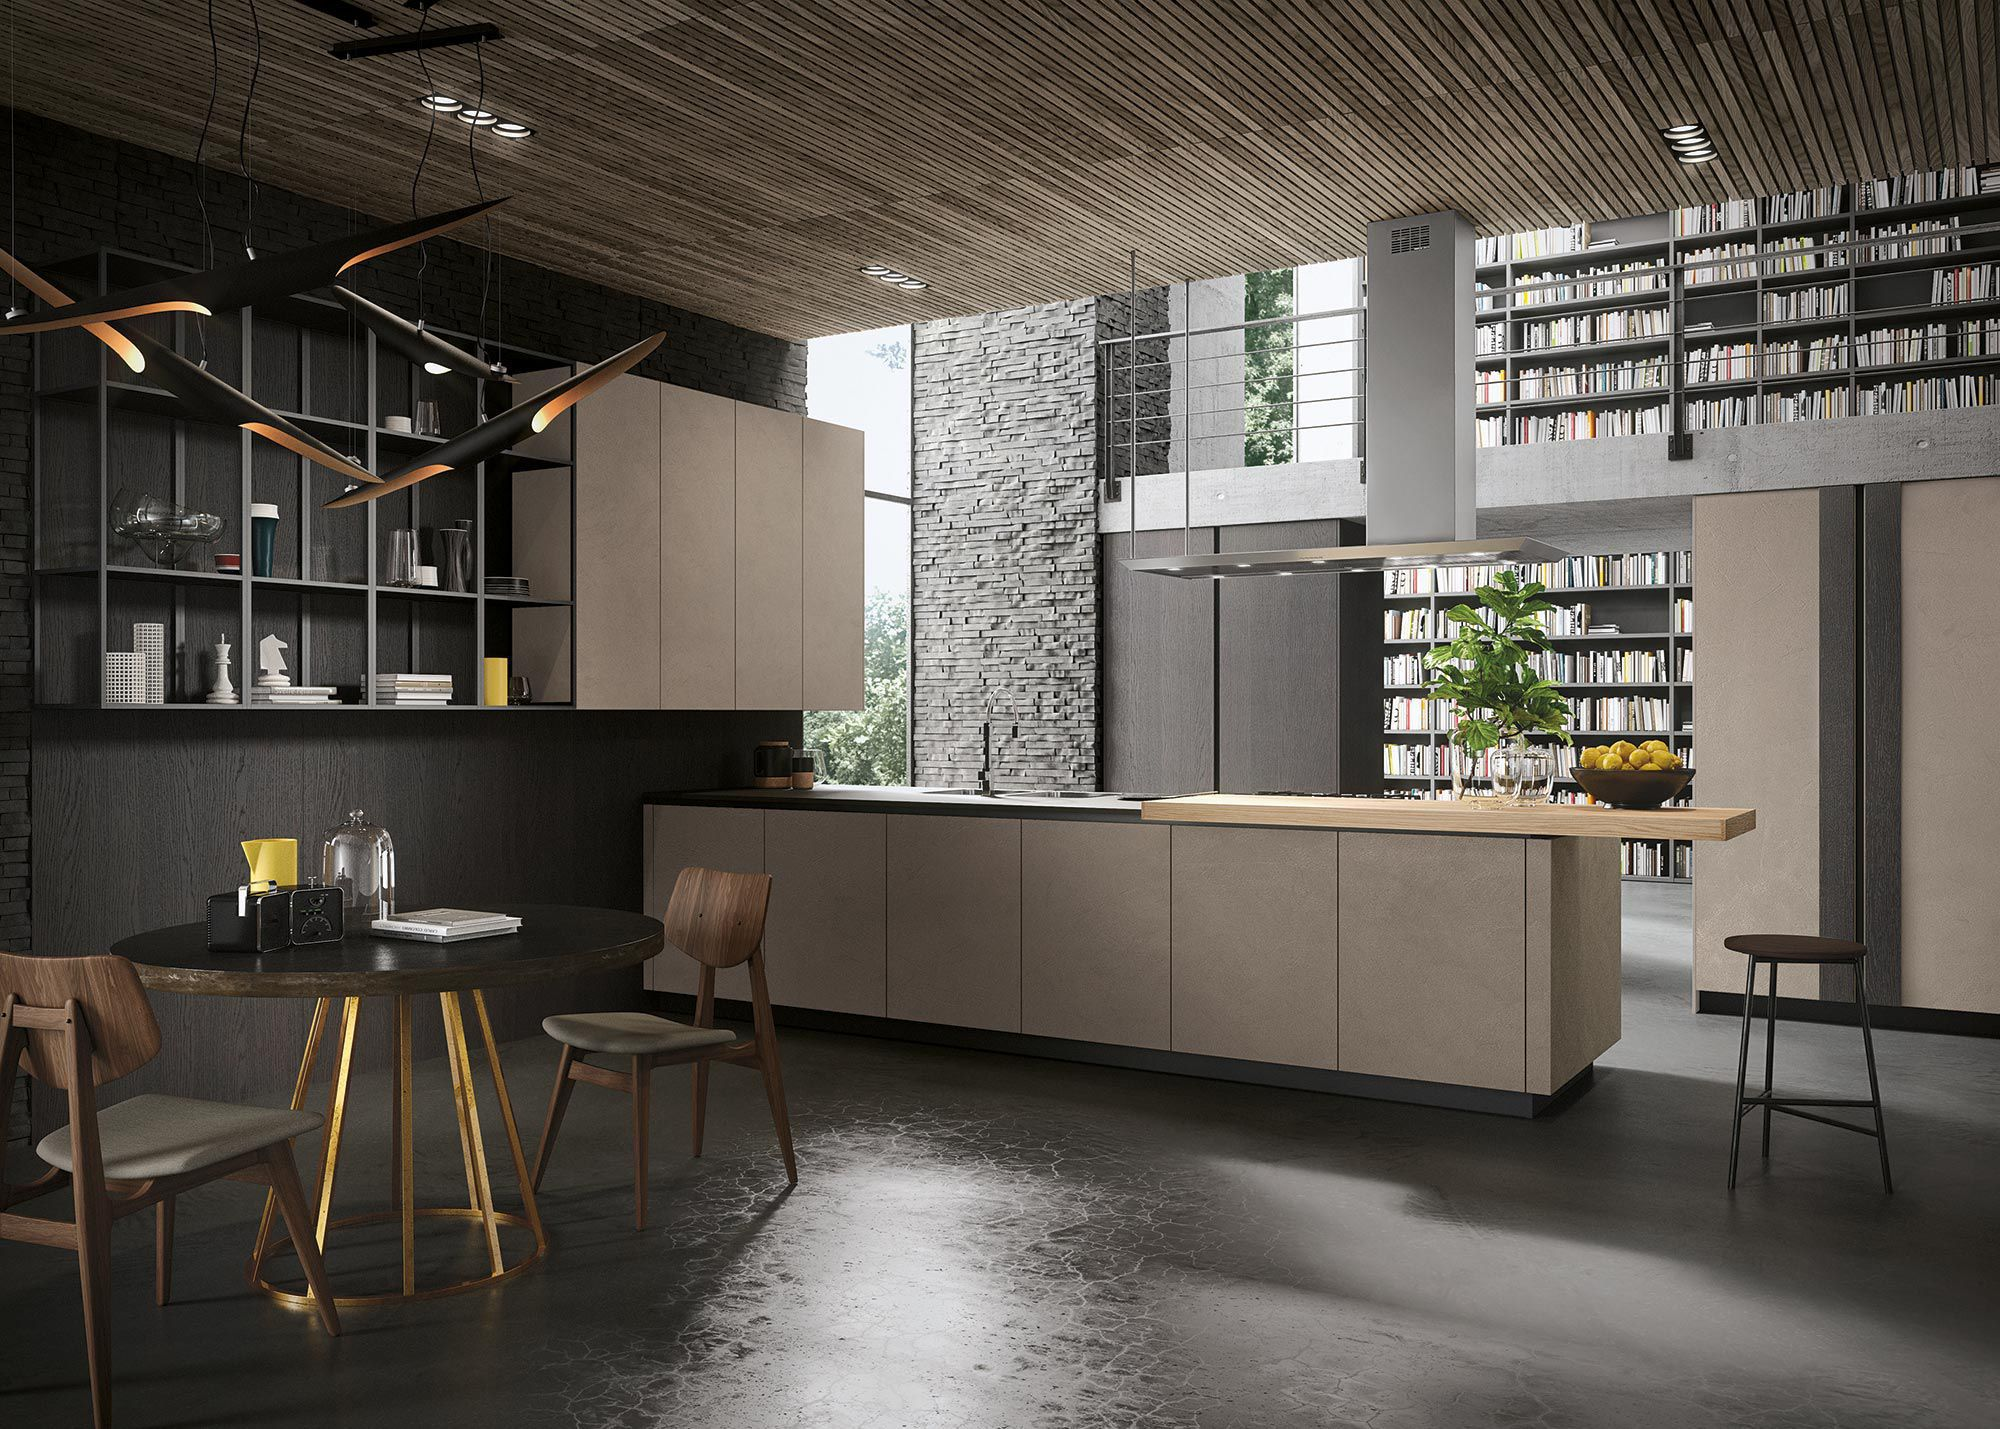 Kitchen Stainless Steel Look By Michele Marcon Design Snaidero With Snaidero .